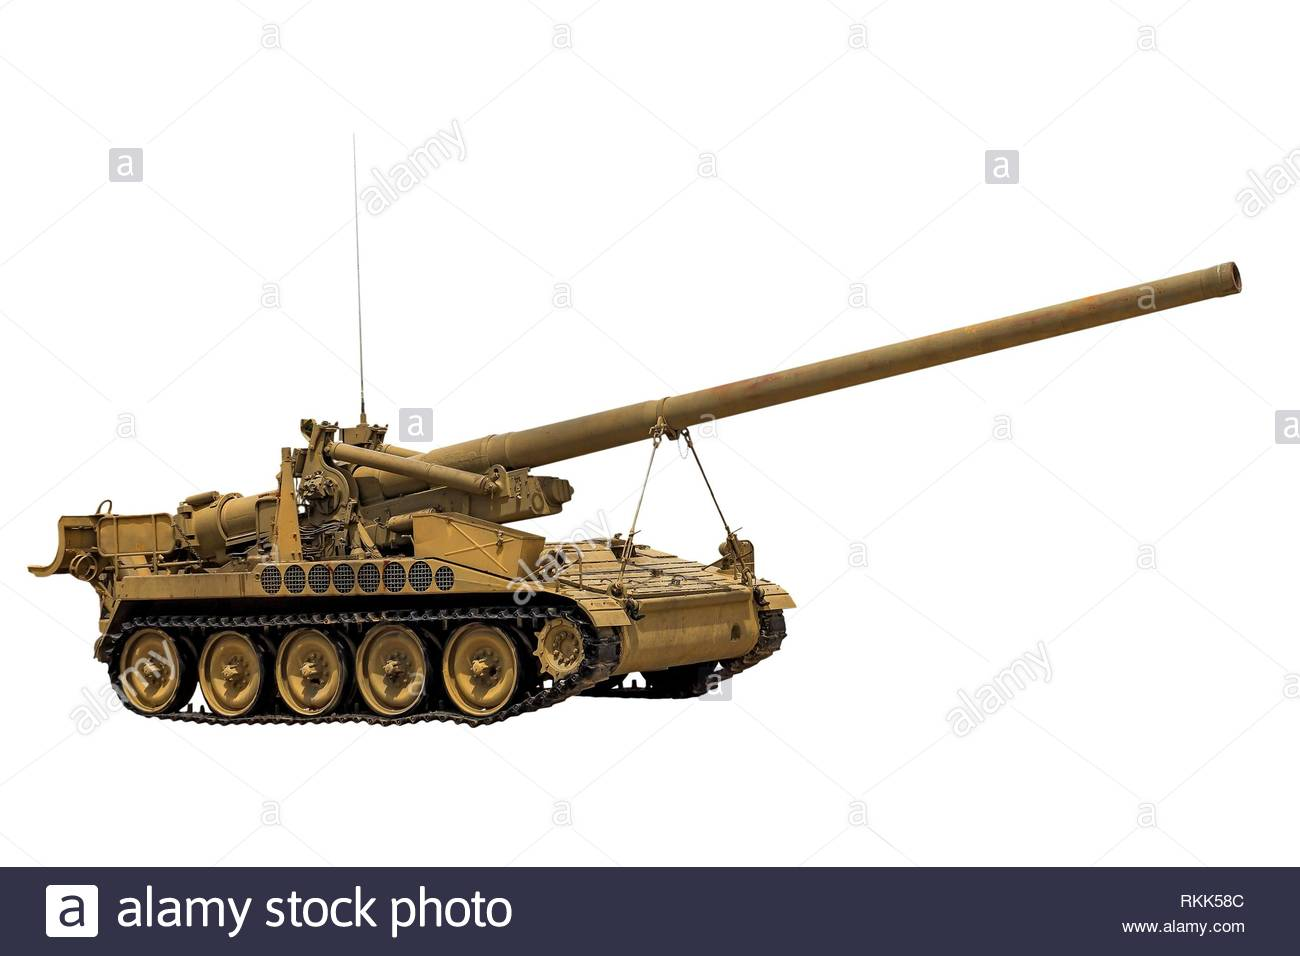 old tank on a white background. - Stock Image